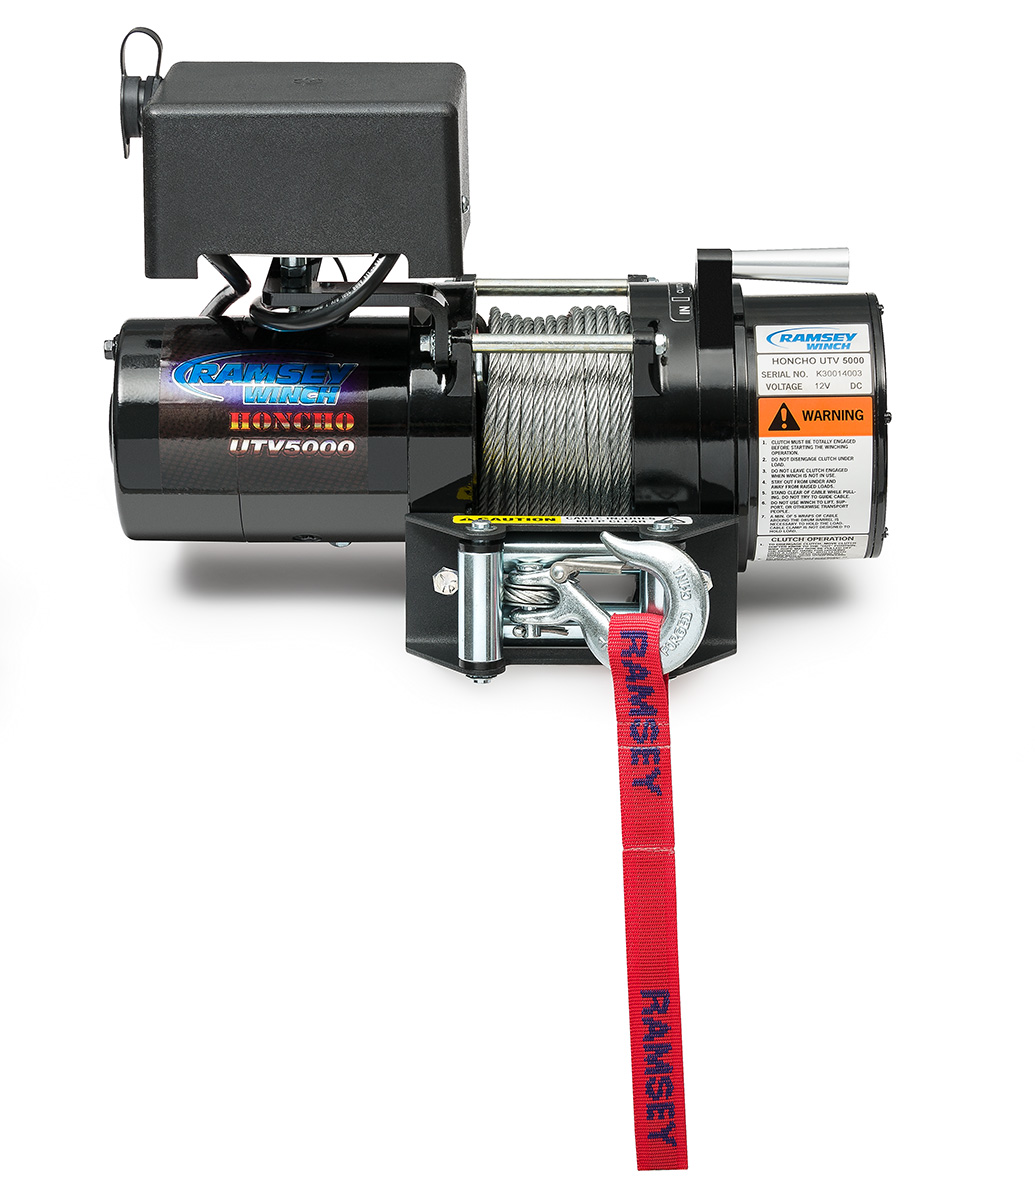 Ramsey Qm 5000 Winch Wiring Diagram Diy Enthusiasts Diagrams 8000 Off Road Winches Rh Ramseywinchstore Com Schematics Atv